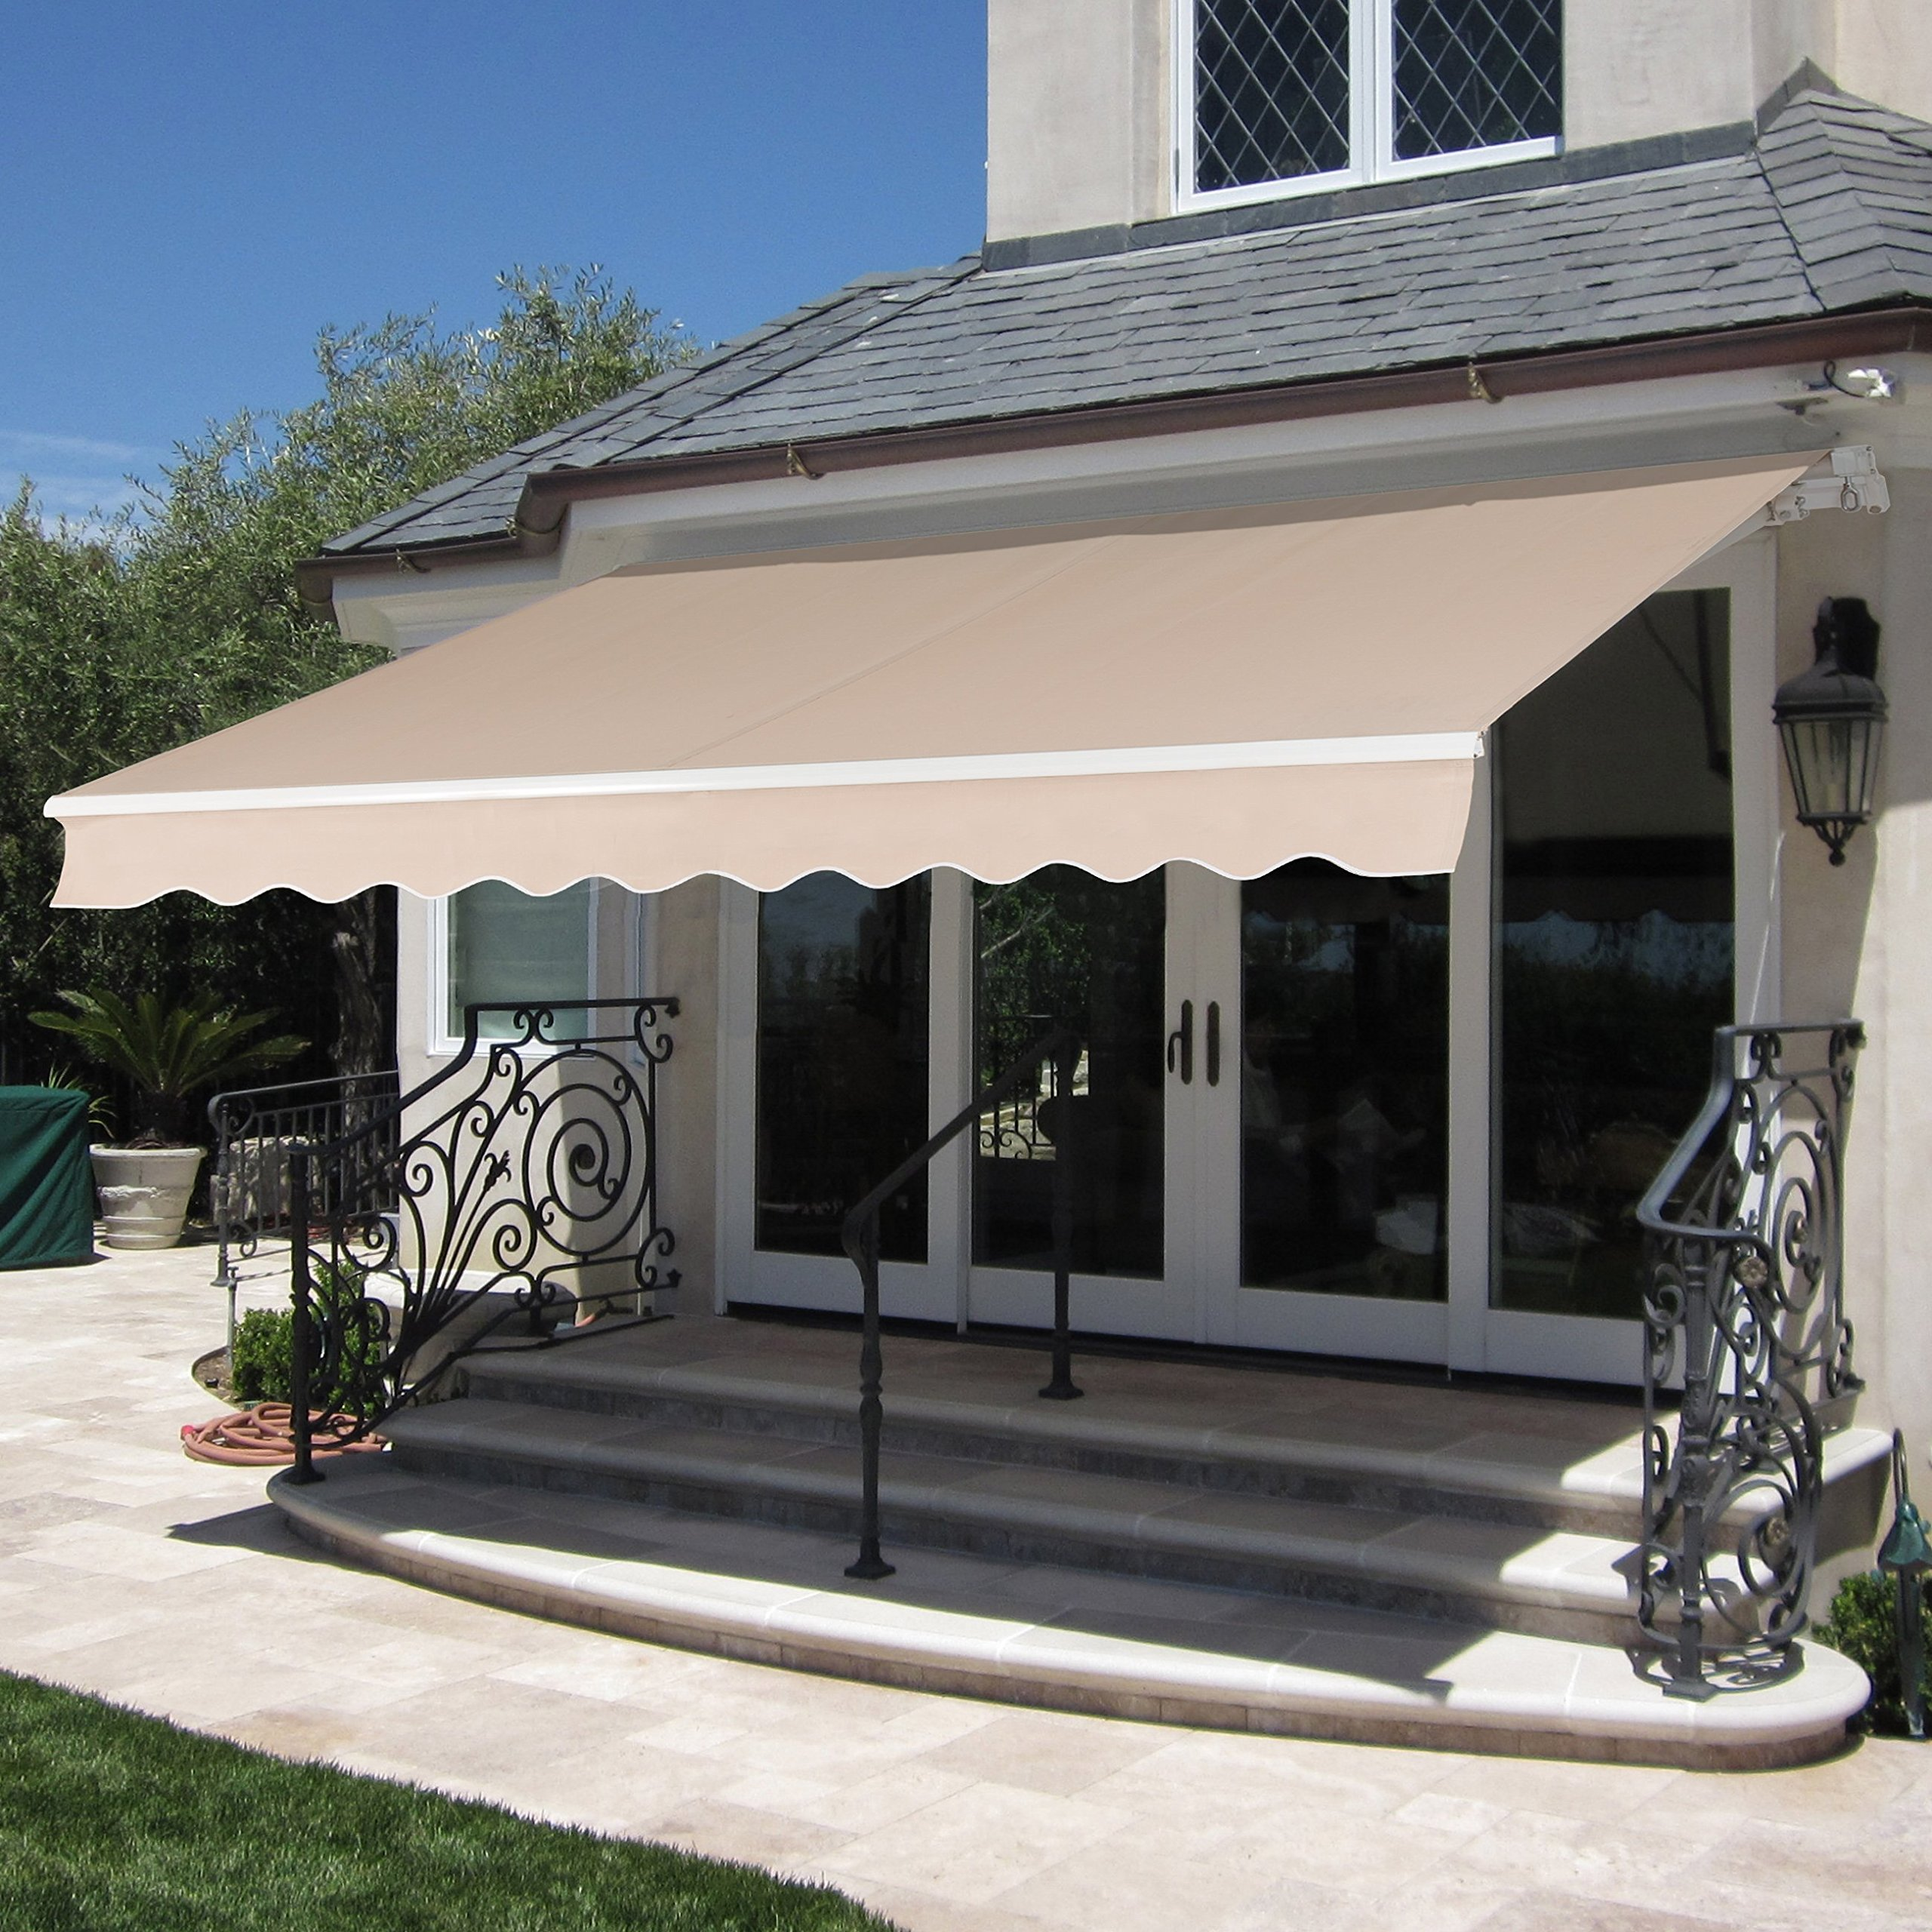 Best Rated in Patio Awnings & Helpful Customer Reviews Amazon